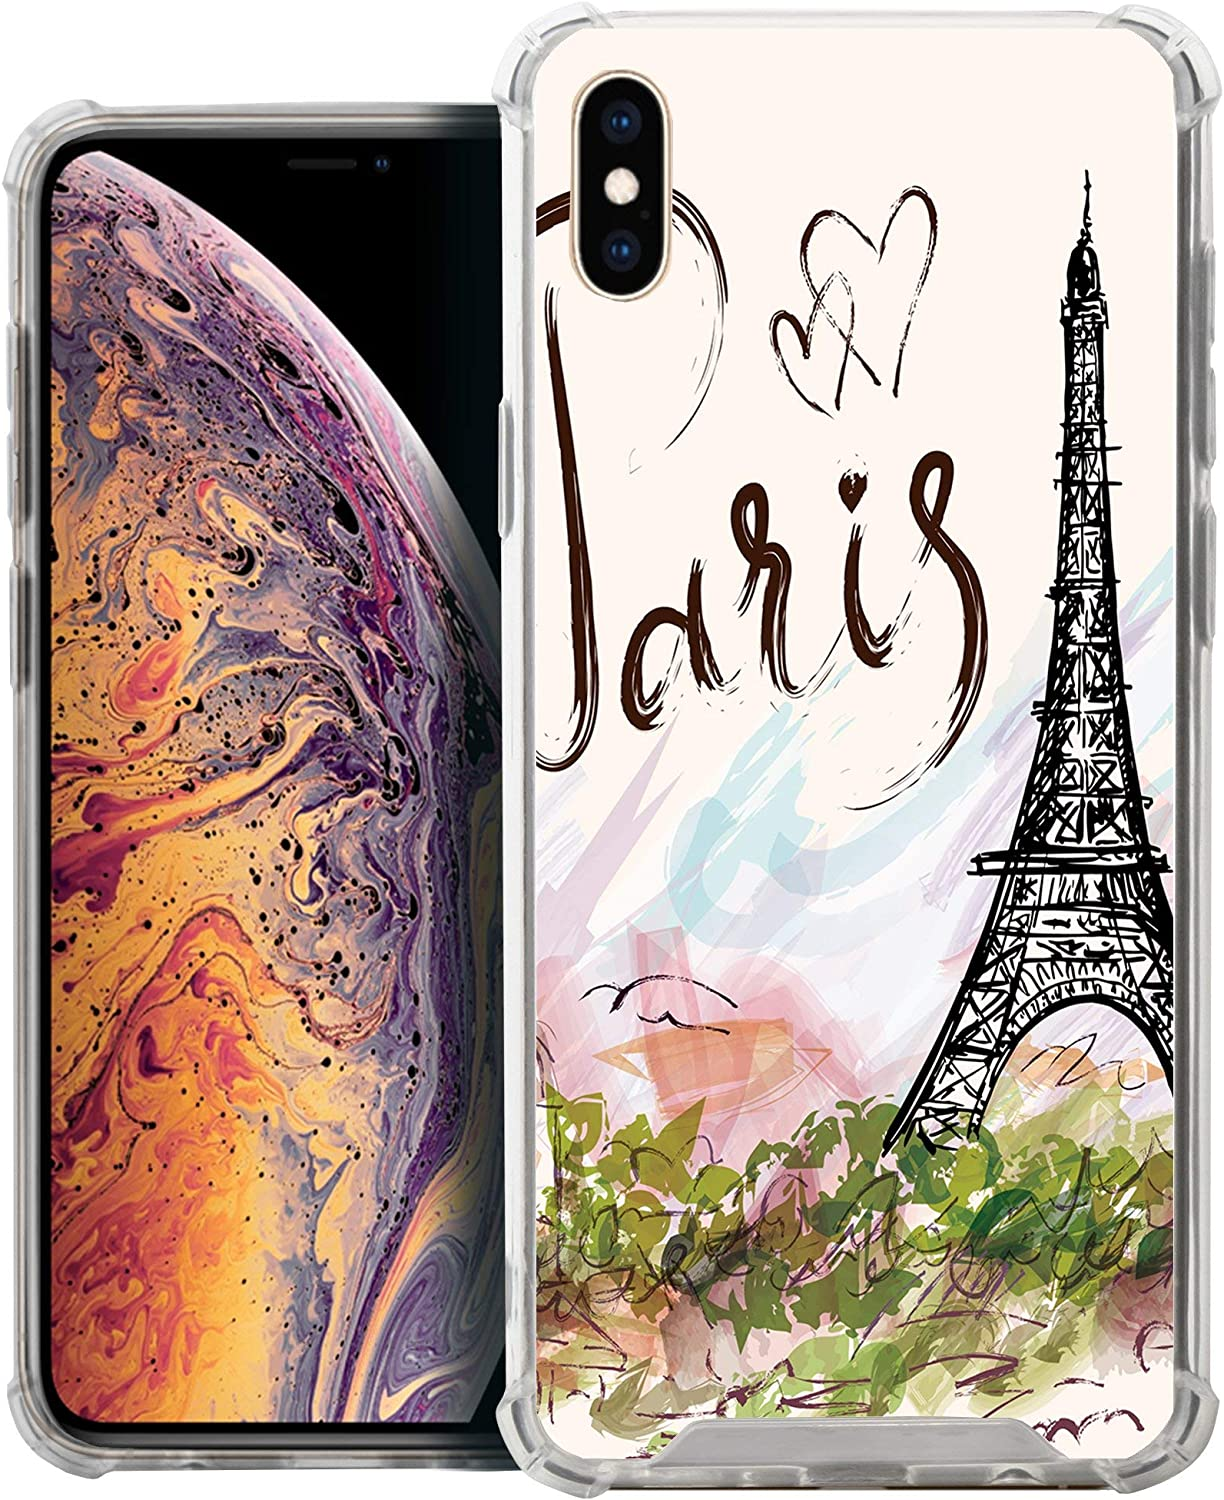 CasesOnDeck Case Compatible with [Apple iPhone Xs Max] iPhone Xs Max TPU Case, Slim Transparent Flexible TPU Cover with Bump and Drop Corner Protection (Paris Tower)